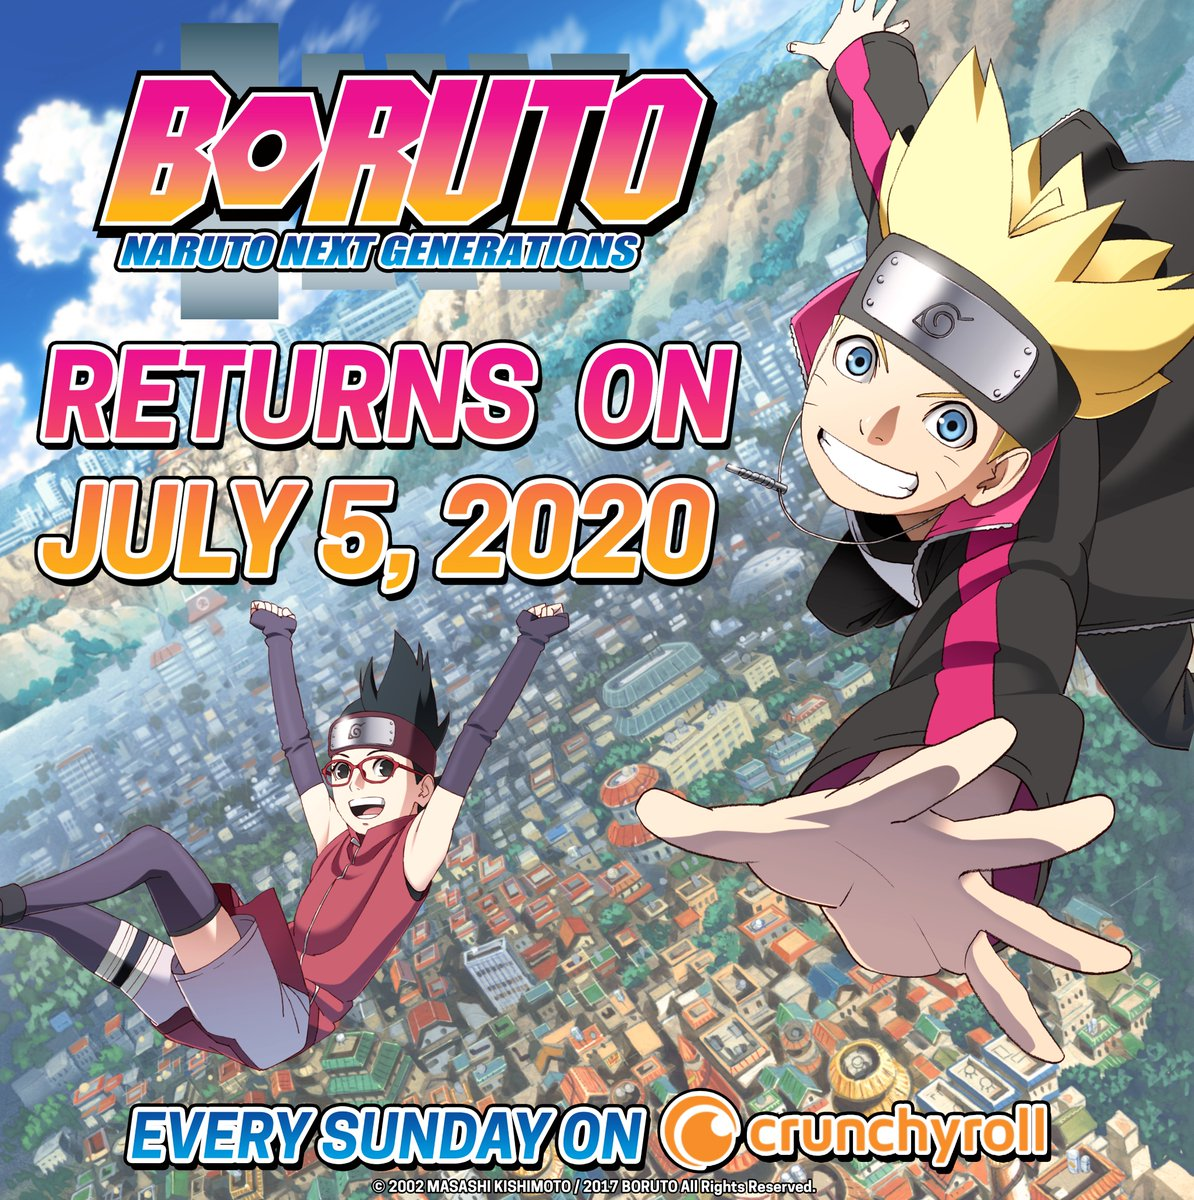 test ツイッターメディア - NEW EPISODES OF BORUTO START JULY 5th!⚡️ More: https://t.co/vIWSTzhOb8 https://t.co/FlGqHNBLfP